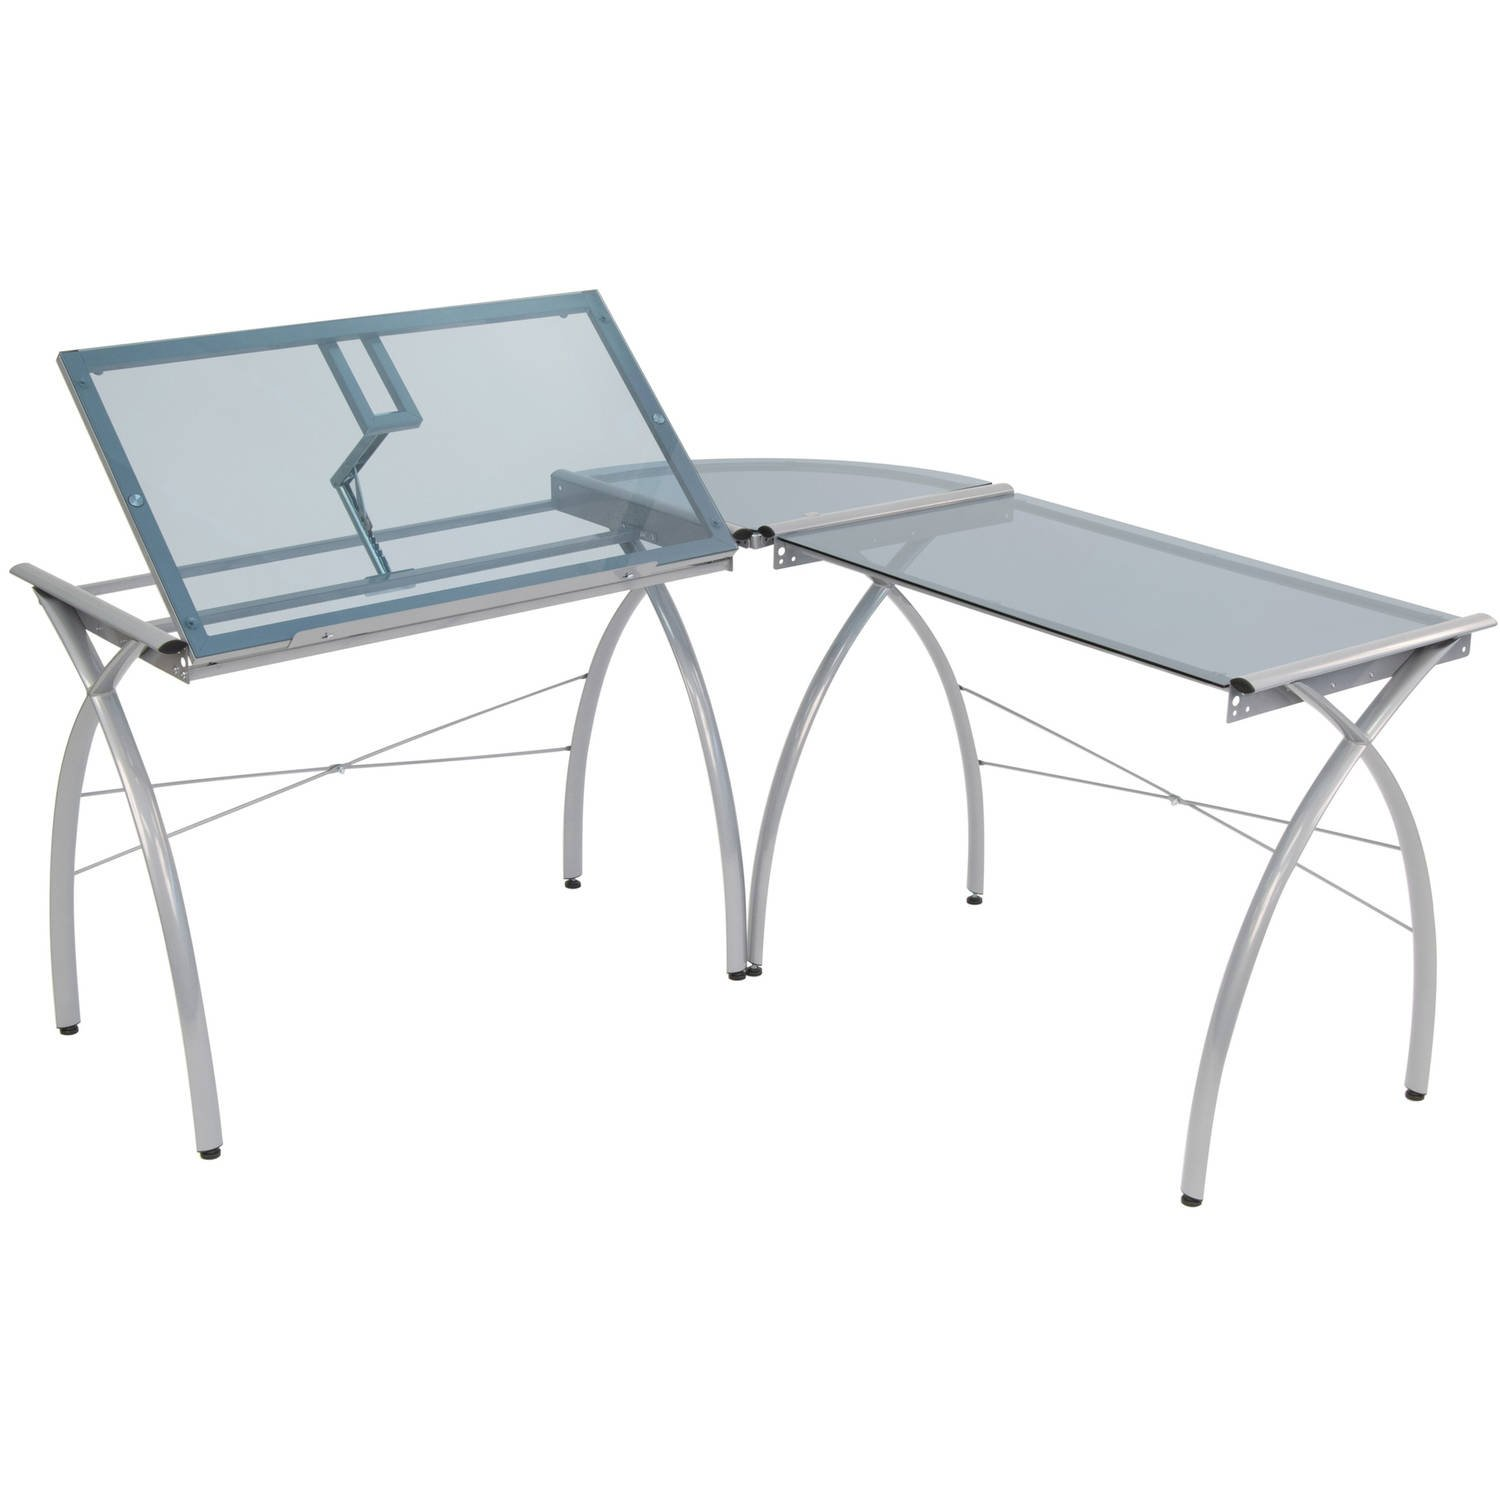 Corner Desk Drafting Table, L Shaped, Workstation, Adjustable Split Top, Functional, Suitable for Home Office, Art Student, Work and Craft Furniture + Expert Guide by Care 4 Home LLC (Image #1)